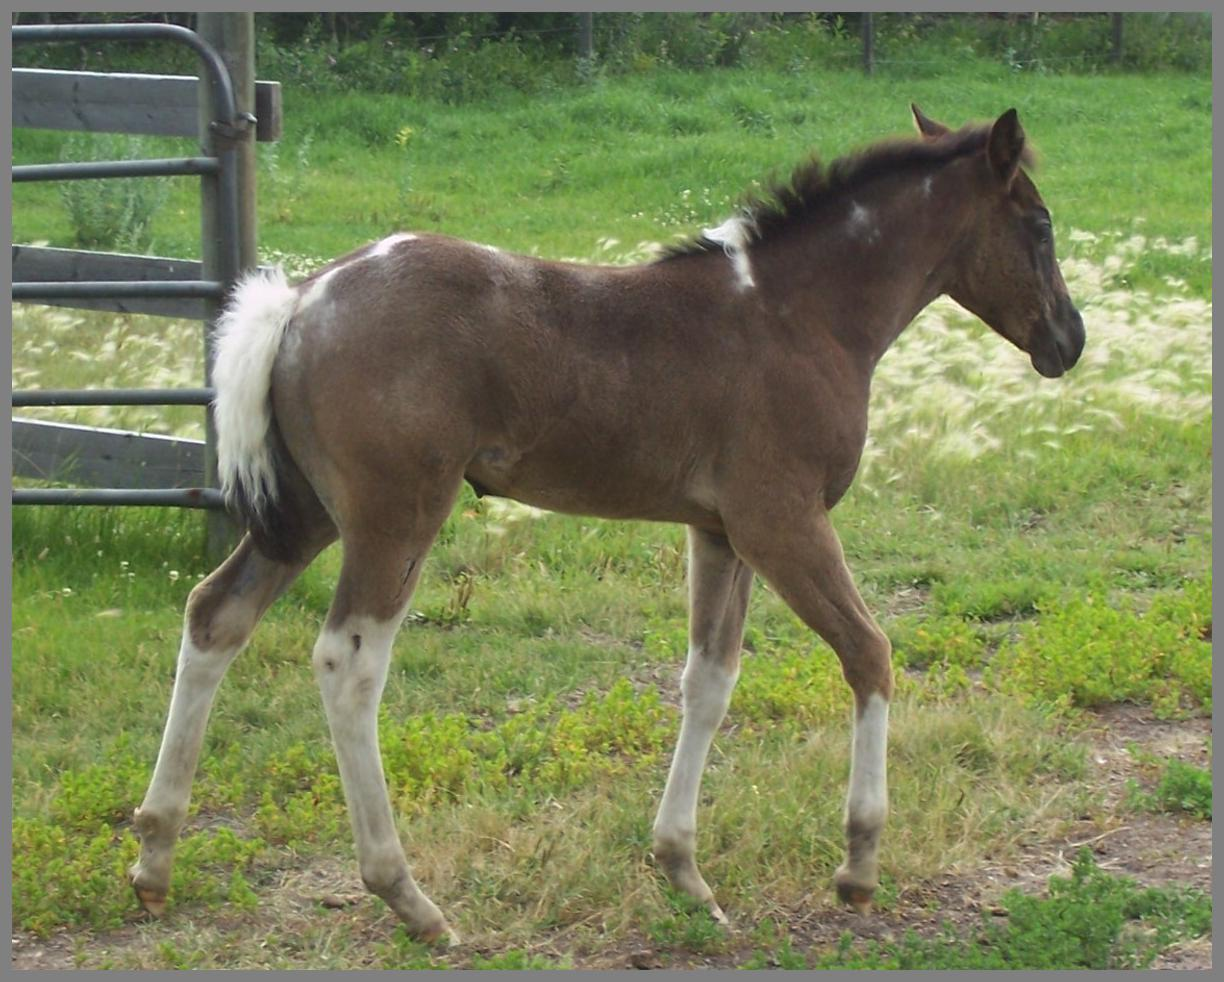 2017 - Blue roan tobiano filly out of Jackies Bar On Fire